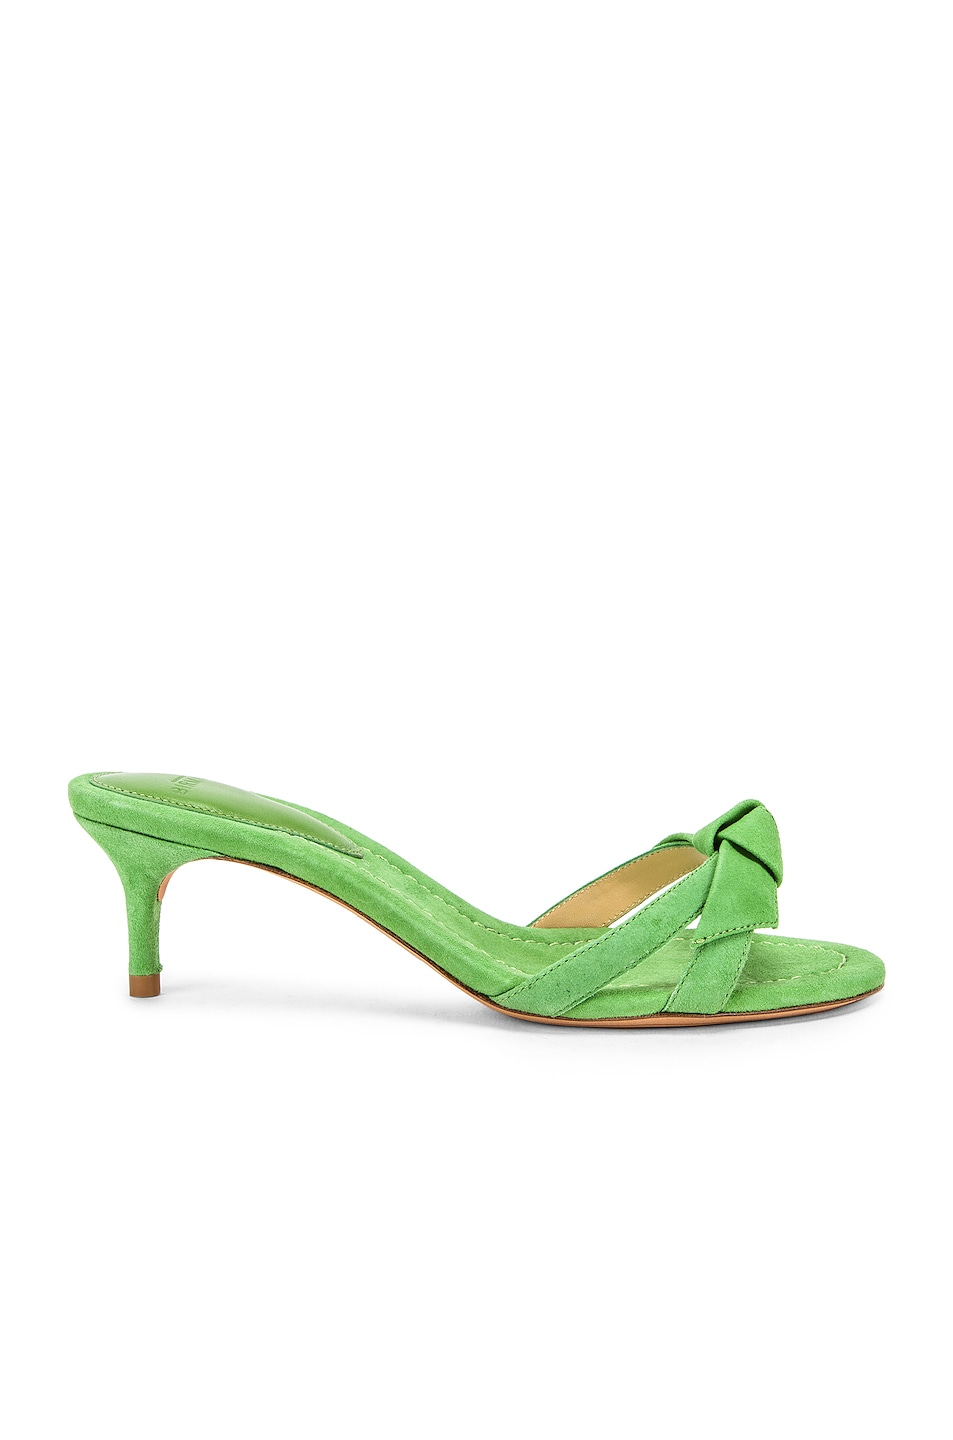 Image 1 of Alexandre Birman Cocktail Clarita Kitten Heel in Kiwi